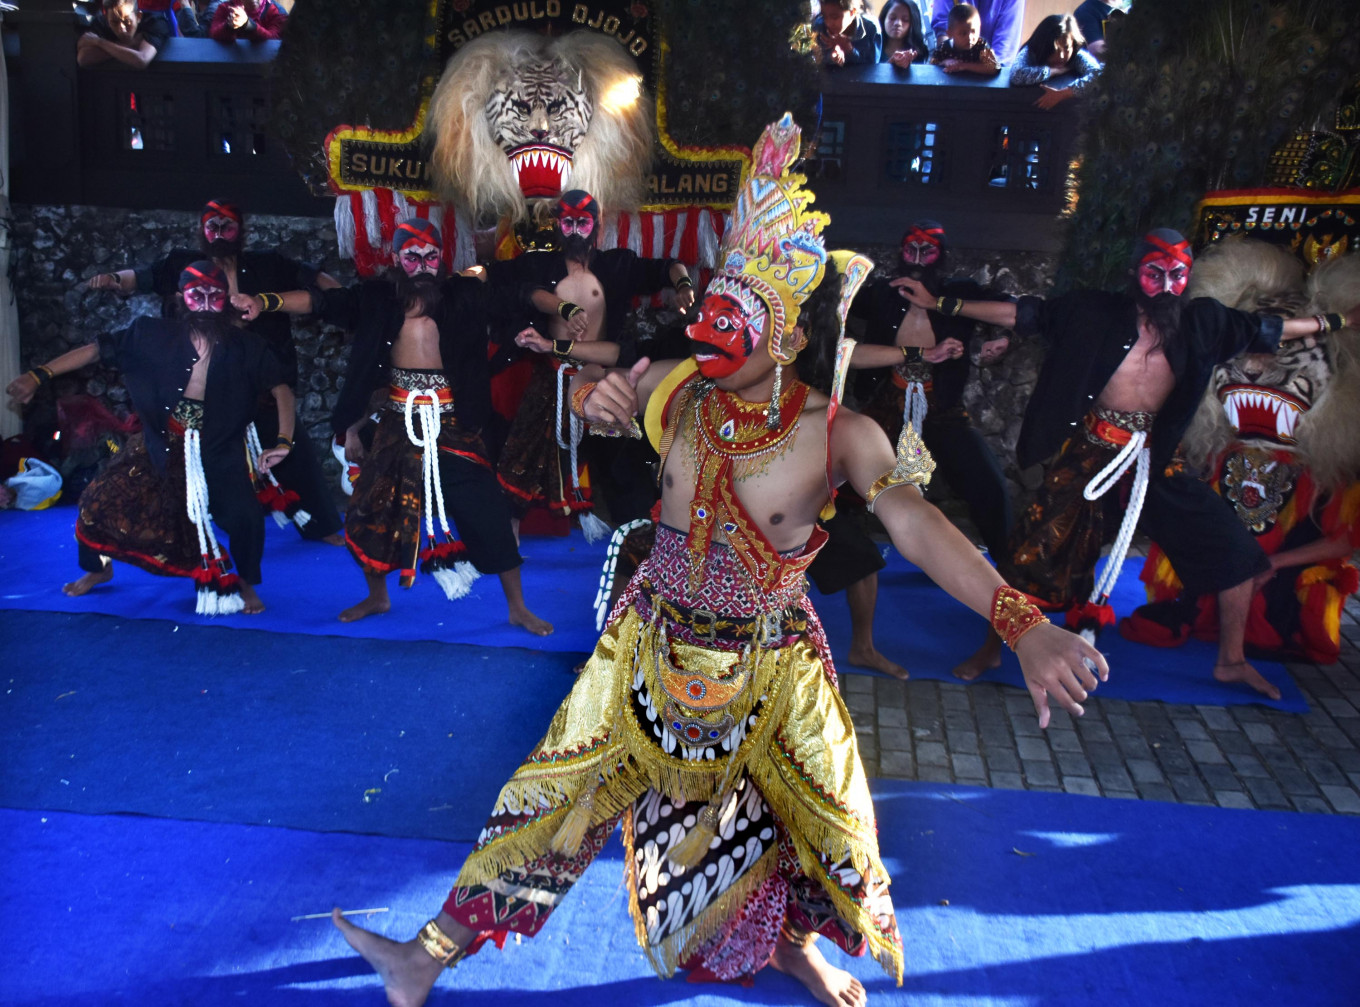 The 'sewandono' dance is performed by the Sardulo Djojo'reog' (traditional masked dance) artist collective of Malang at the 2019 Archipelago Panji Festival in Krida Budaya Park, Malang, East Java, on July 12.